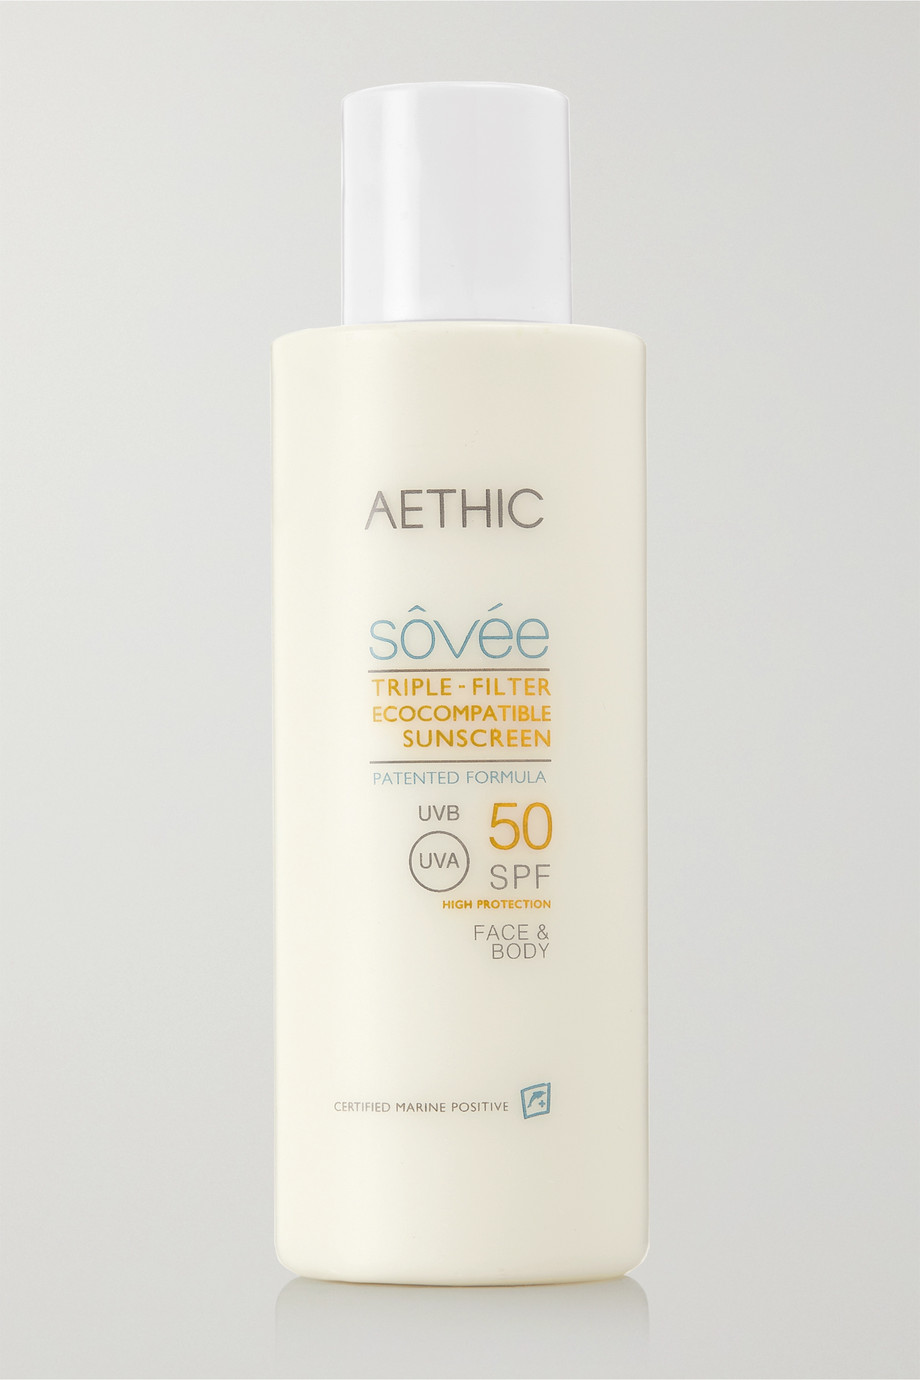 AETHIC Triple-Filter Ecocompatible Sunscreen SPF50, 150ml